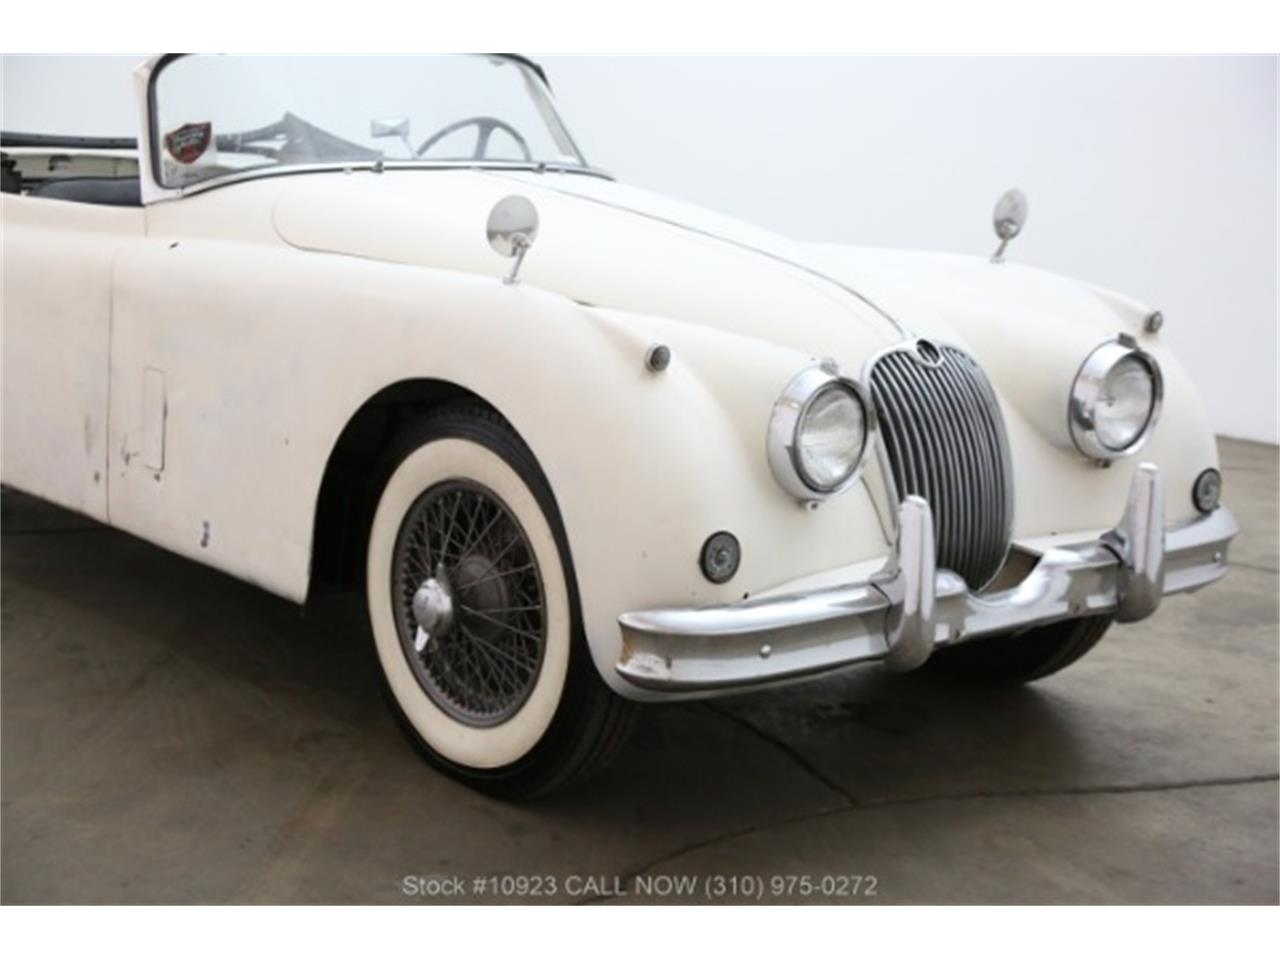 hight resolution of large picture of classic 58 xk150 located in california q929